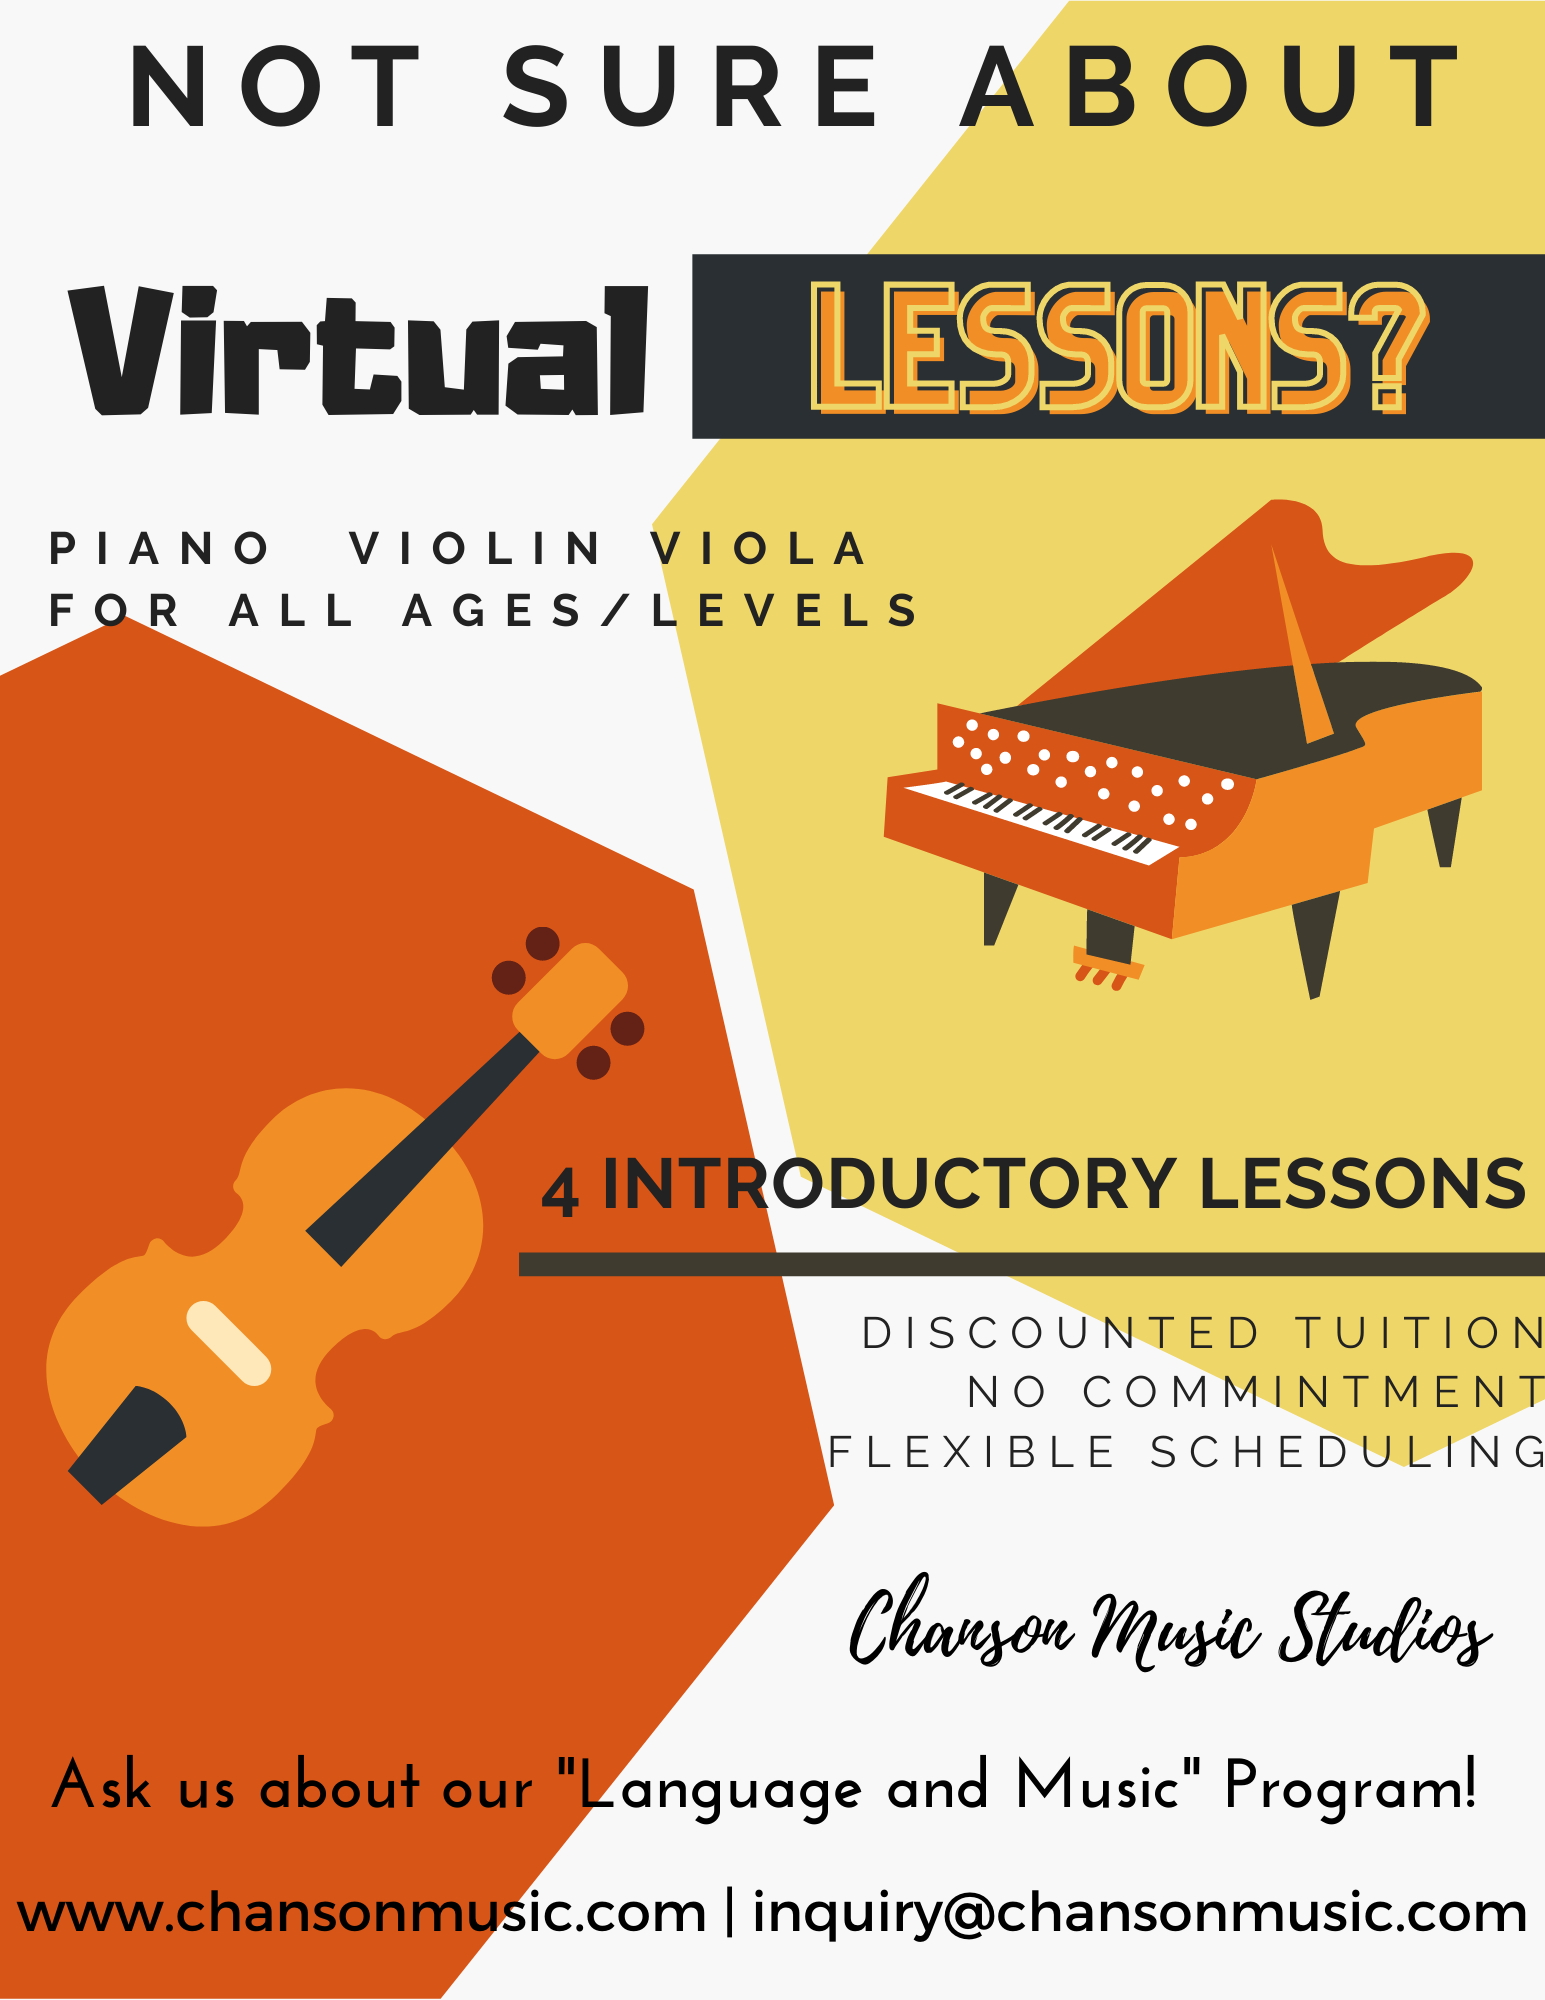 https://www.chansonmusic.com/lessons